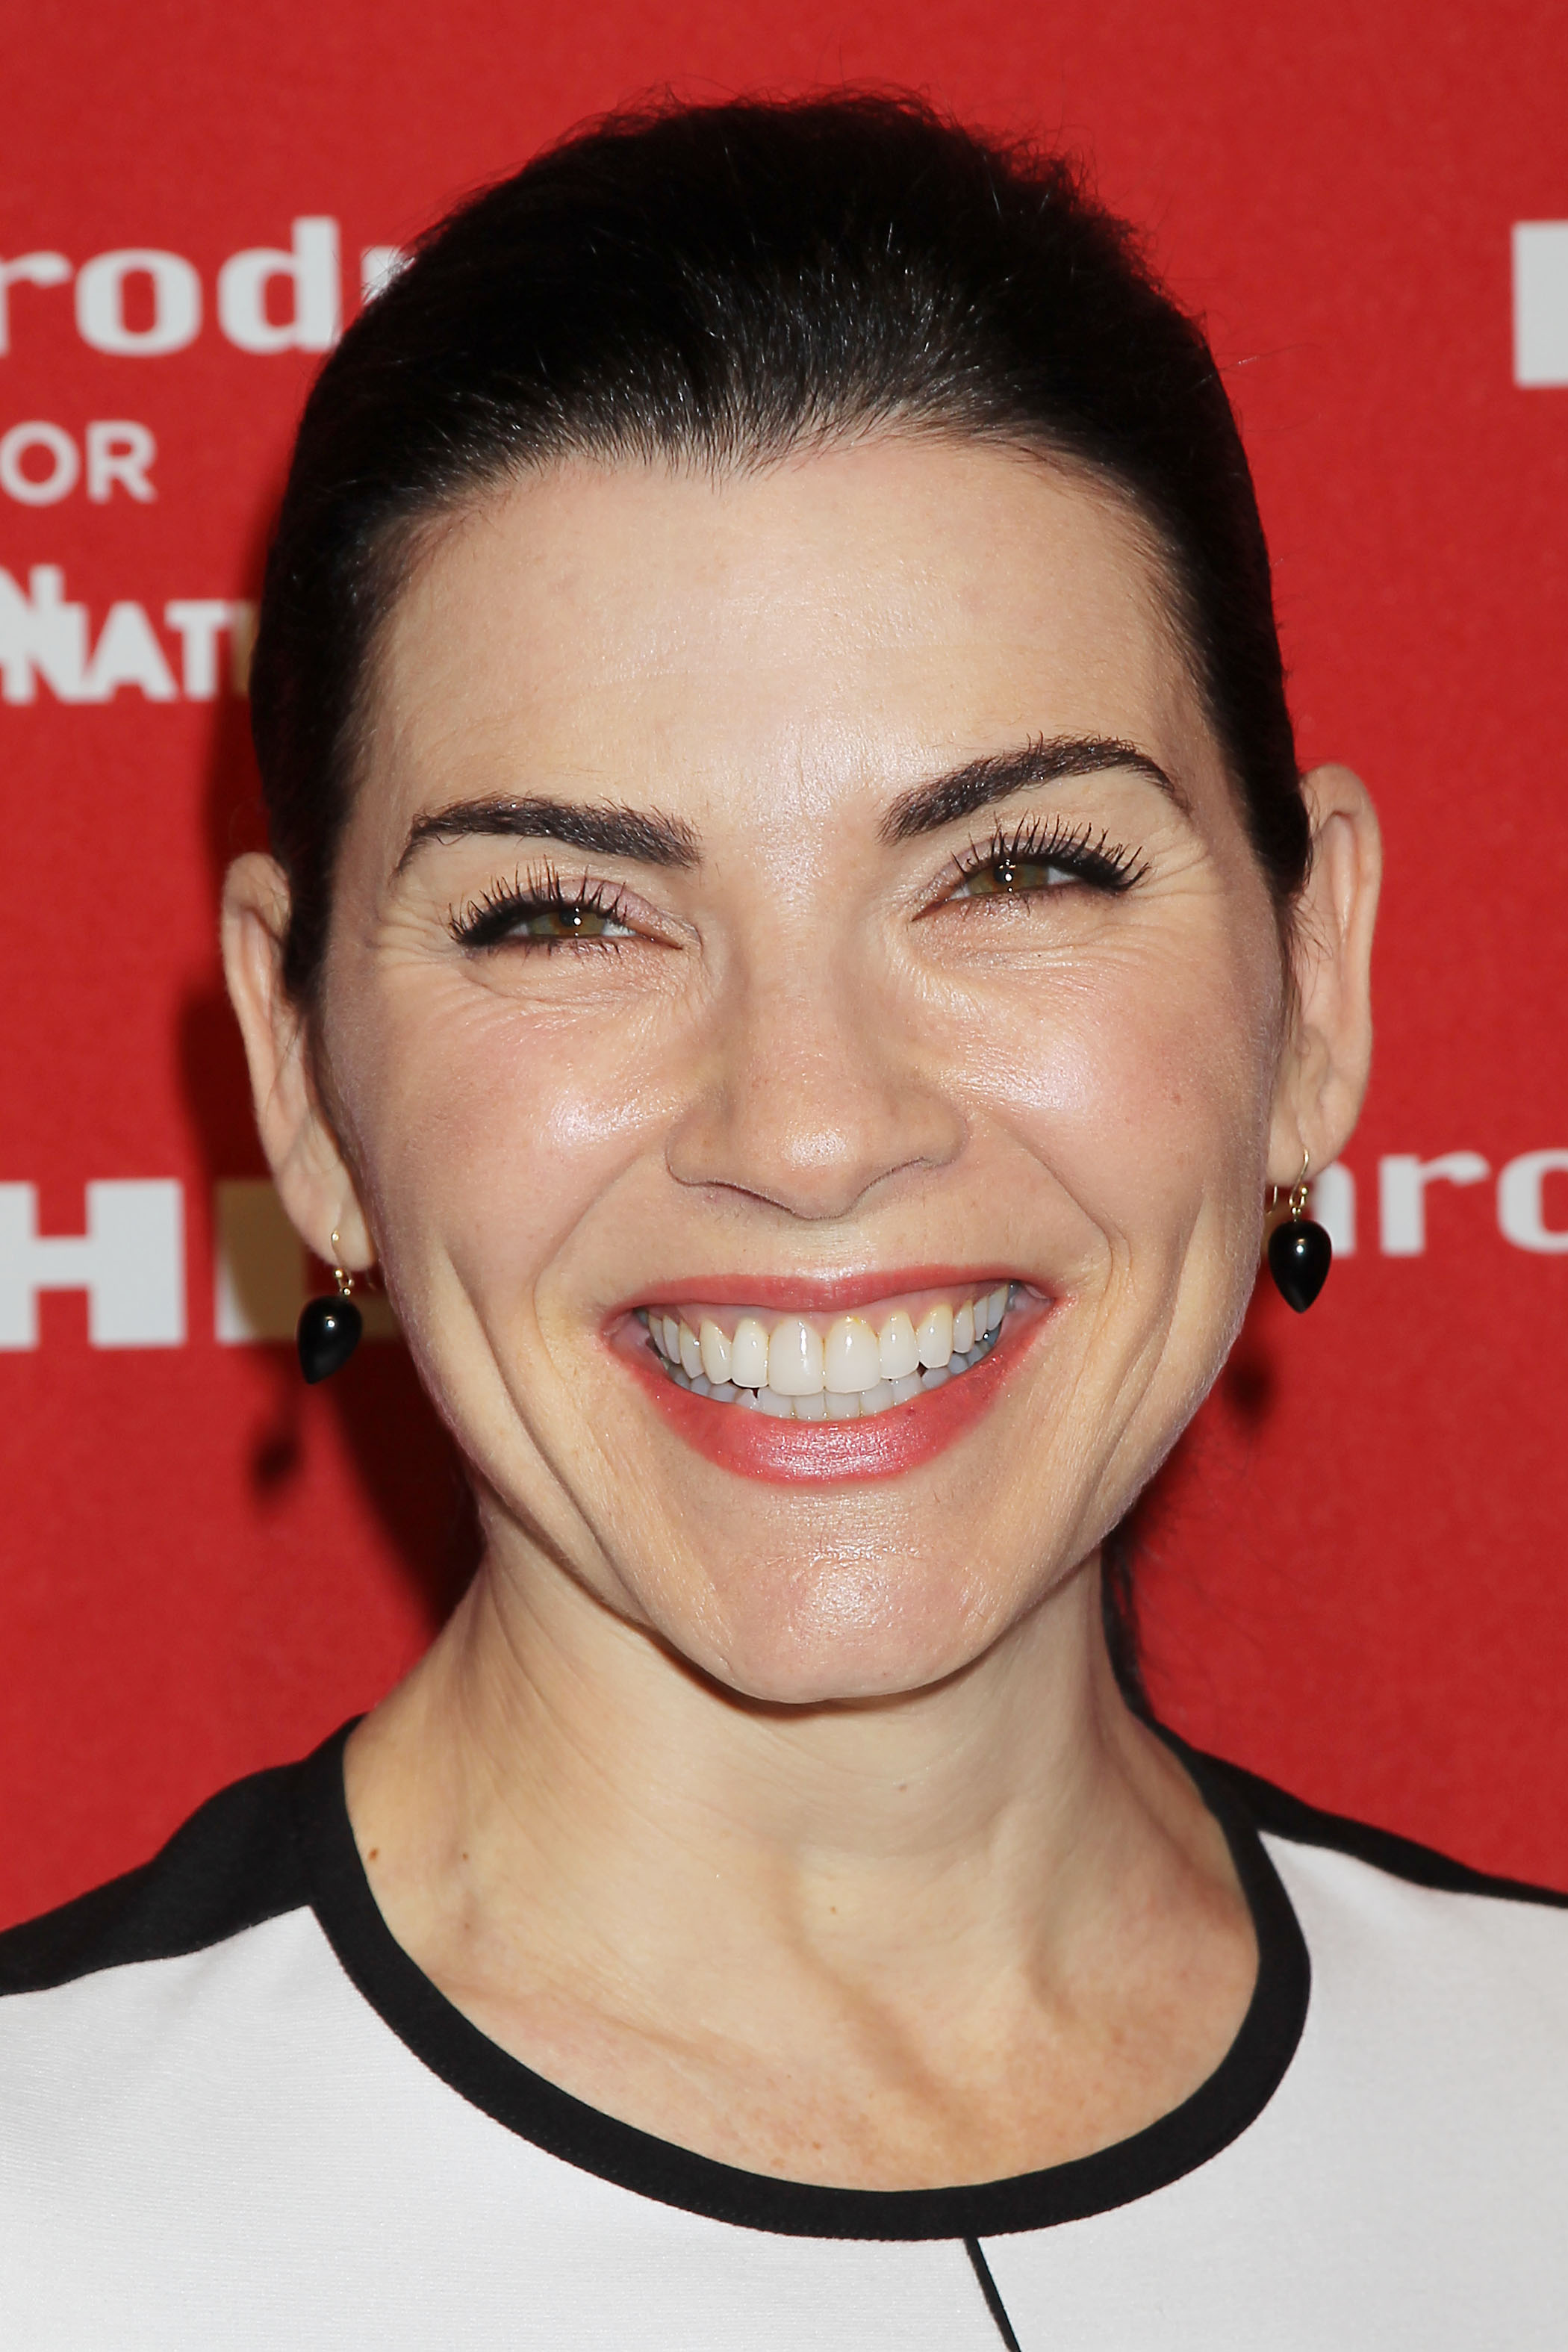 Julianna Margulies background